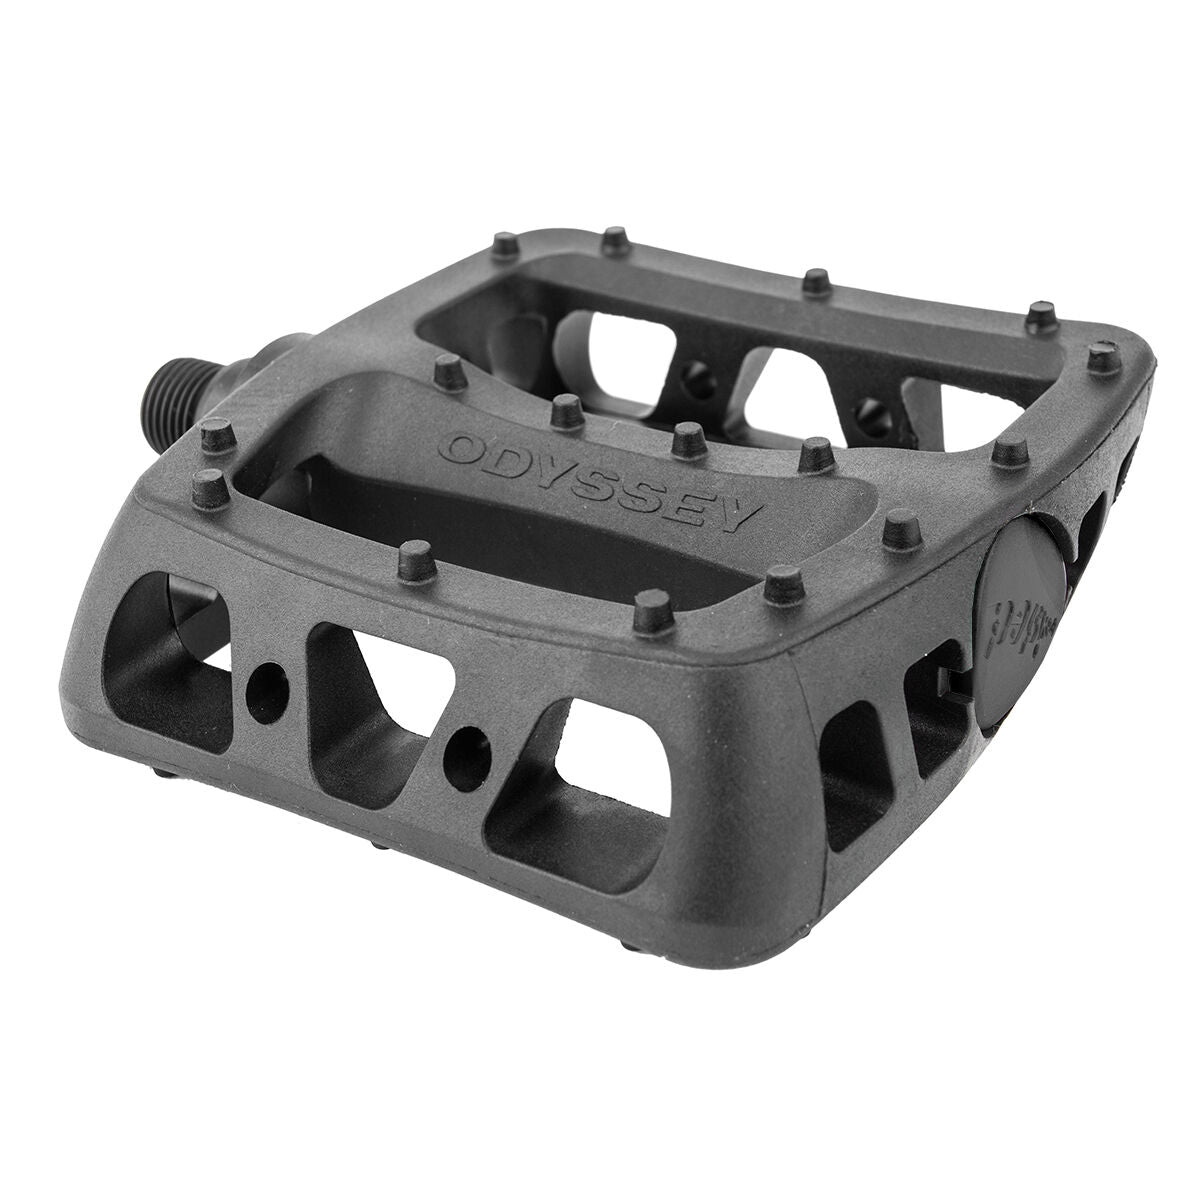 "Odyssey Twisted PC BMX Platform Pedals -  9/16"" - Black"